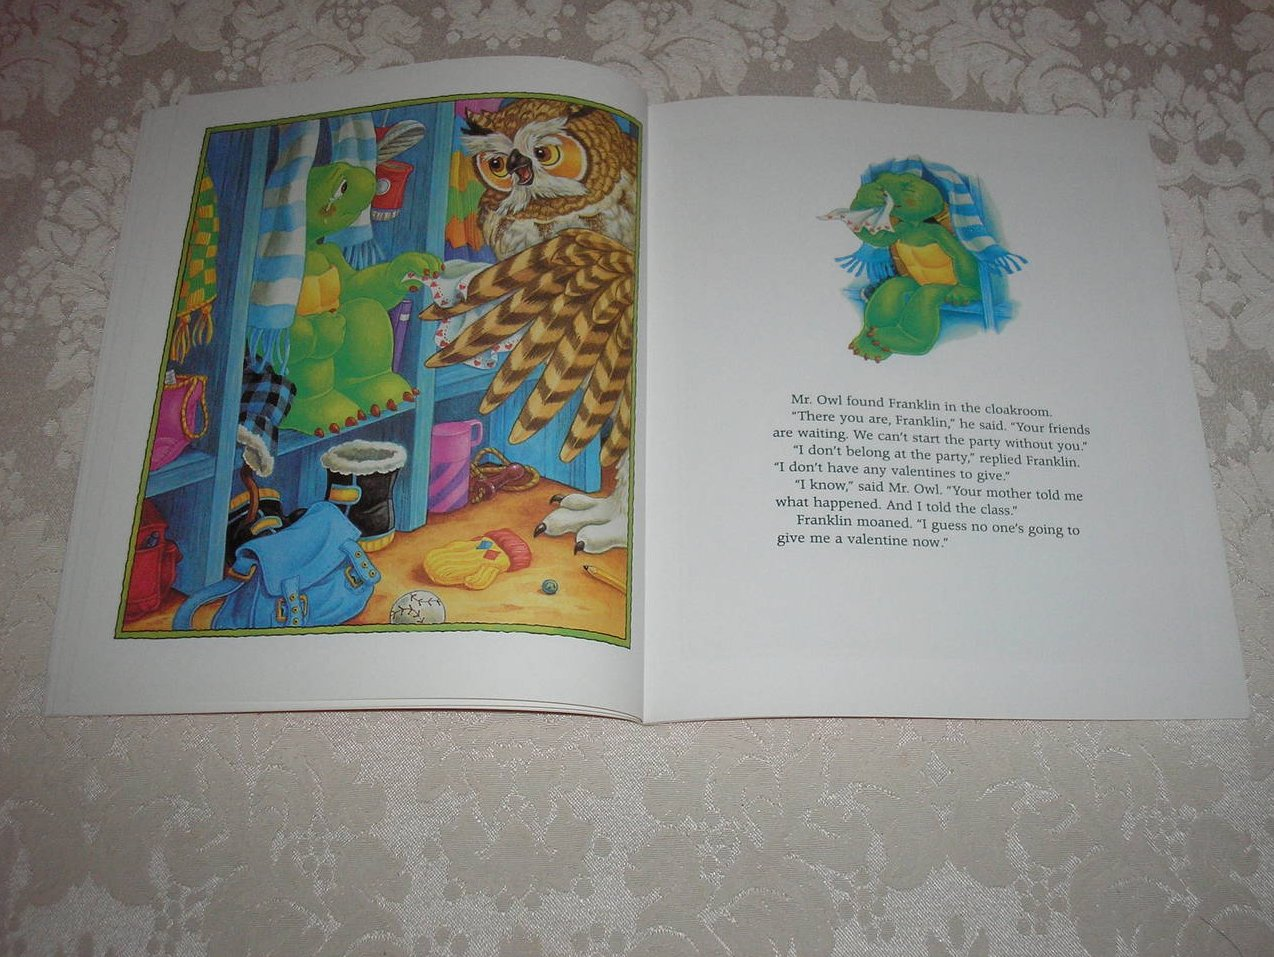 Image 4 of Franklin's Valentines Paulette Bourgeois Like New Softcover